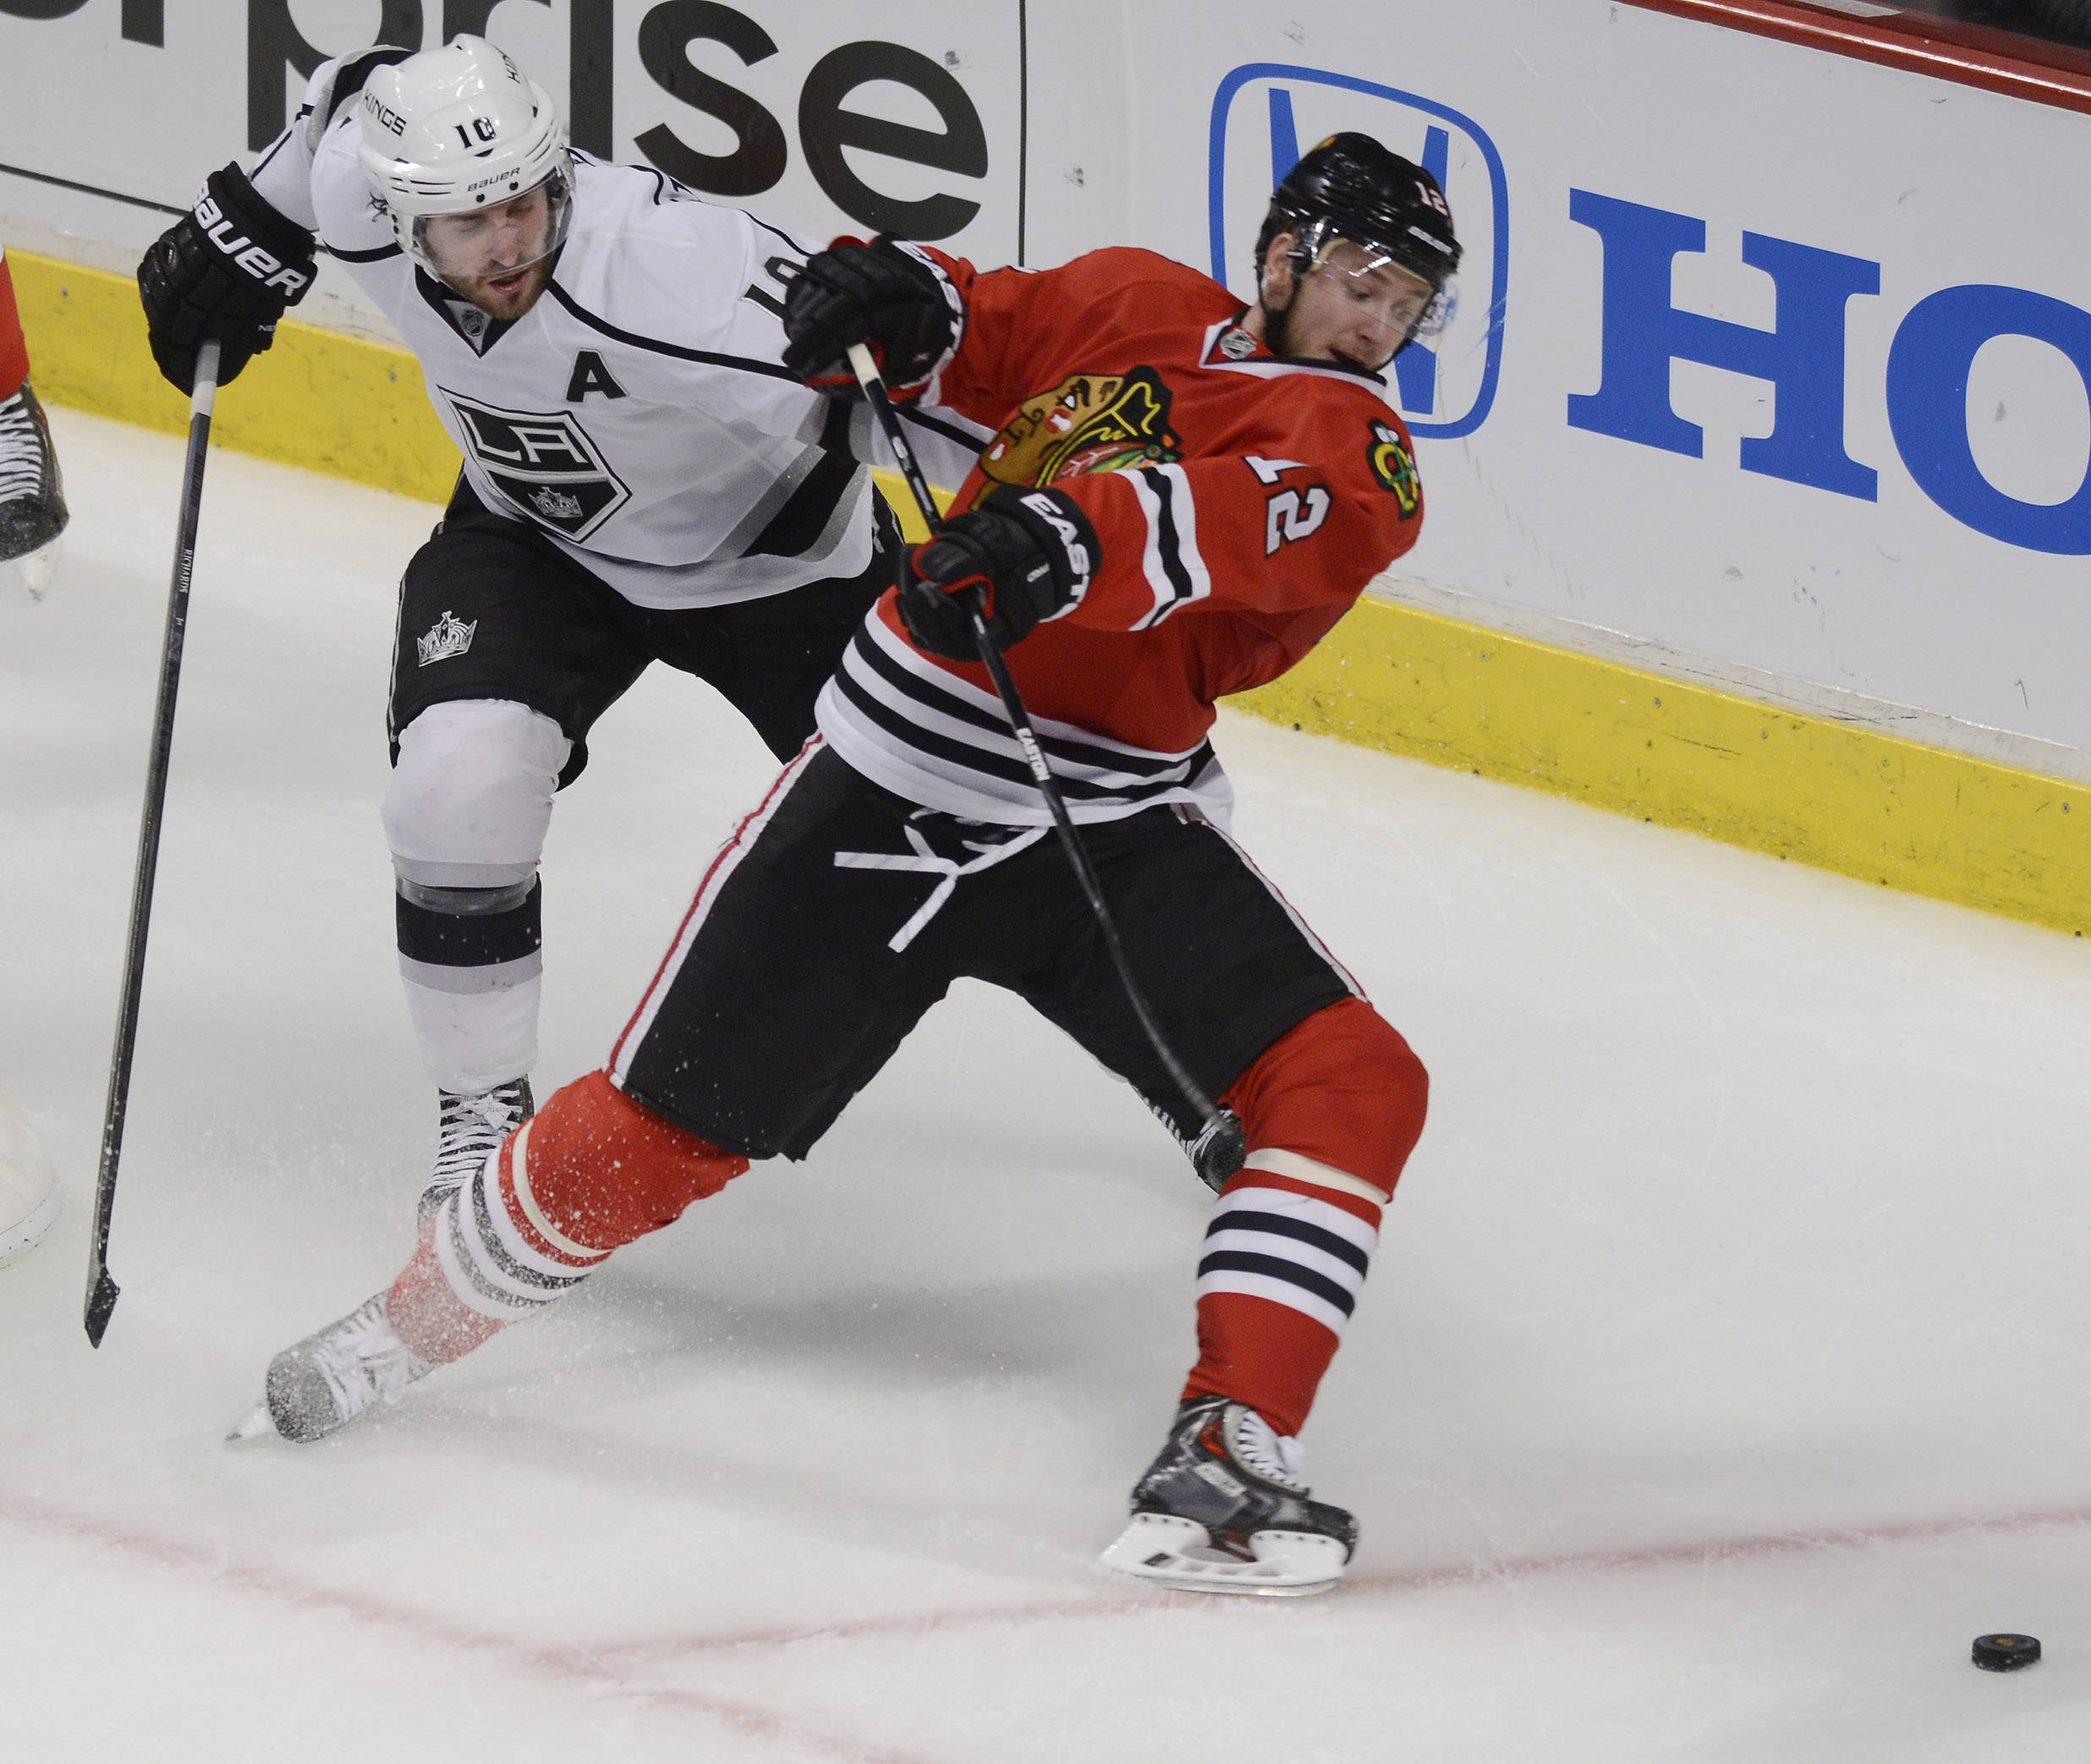 Chicago Blackhawks center Peter Regin, right, and Los Angeles Kings center Mike Richards make contact during Sunday's game at the United Center in Chicago.